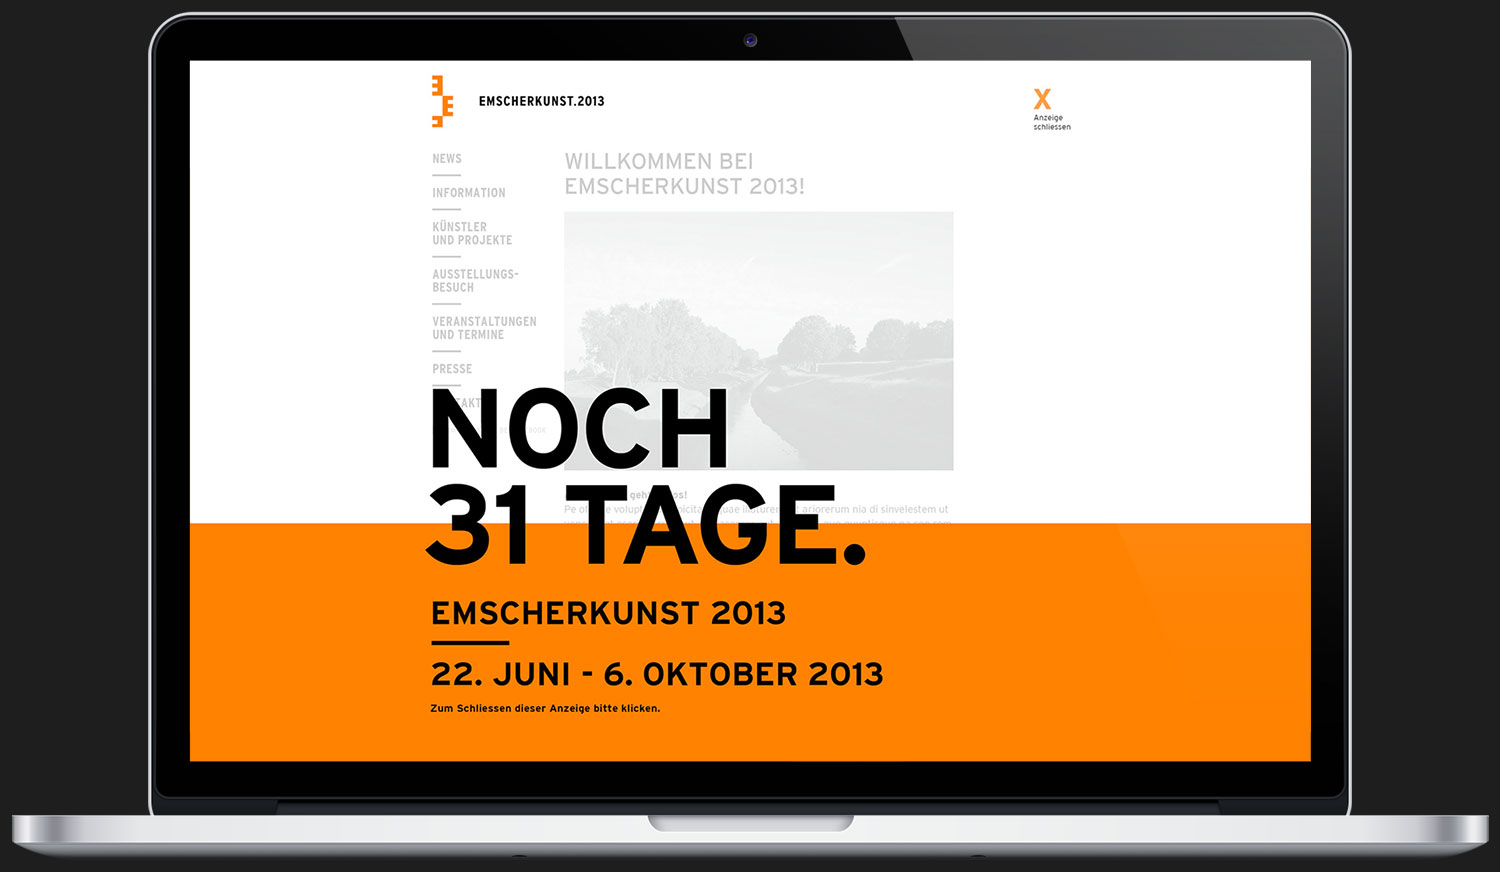 emscherkunst21_website_countdown2.jpg